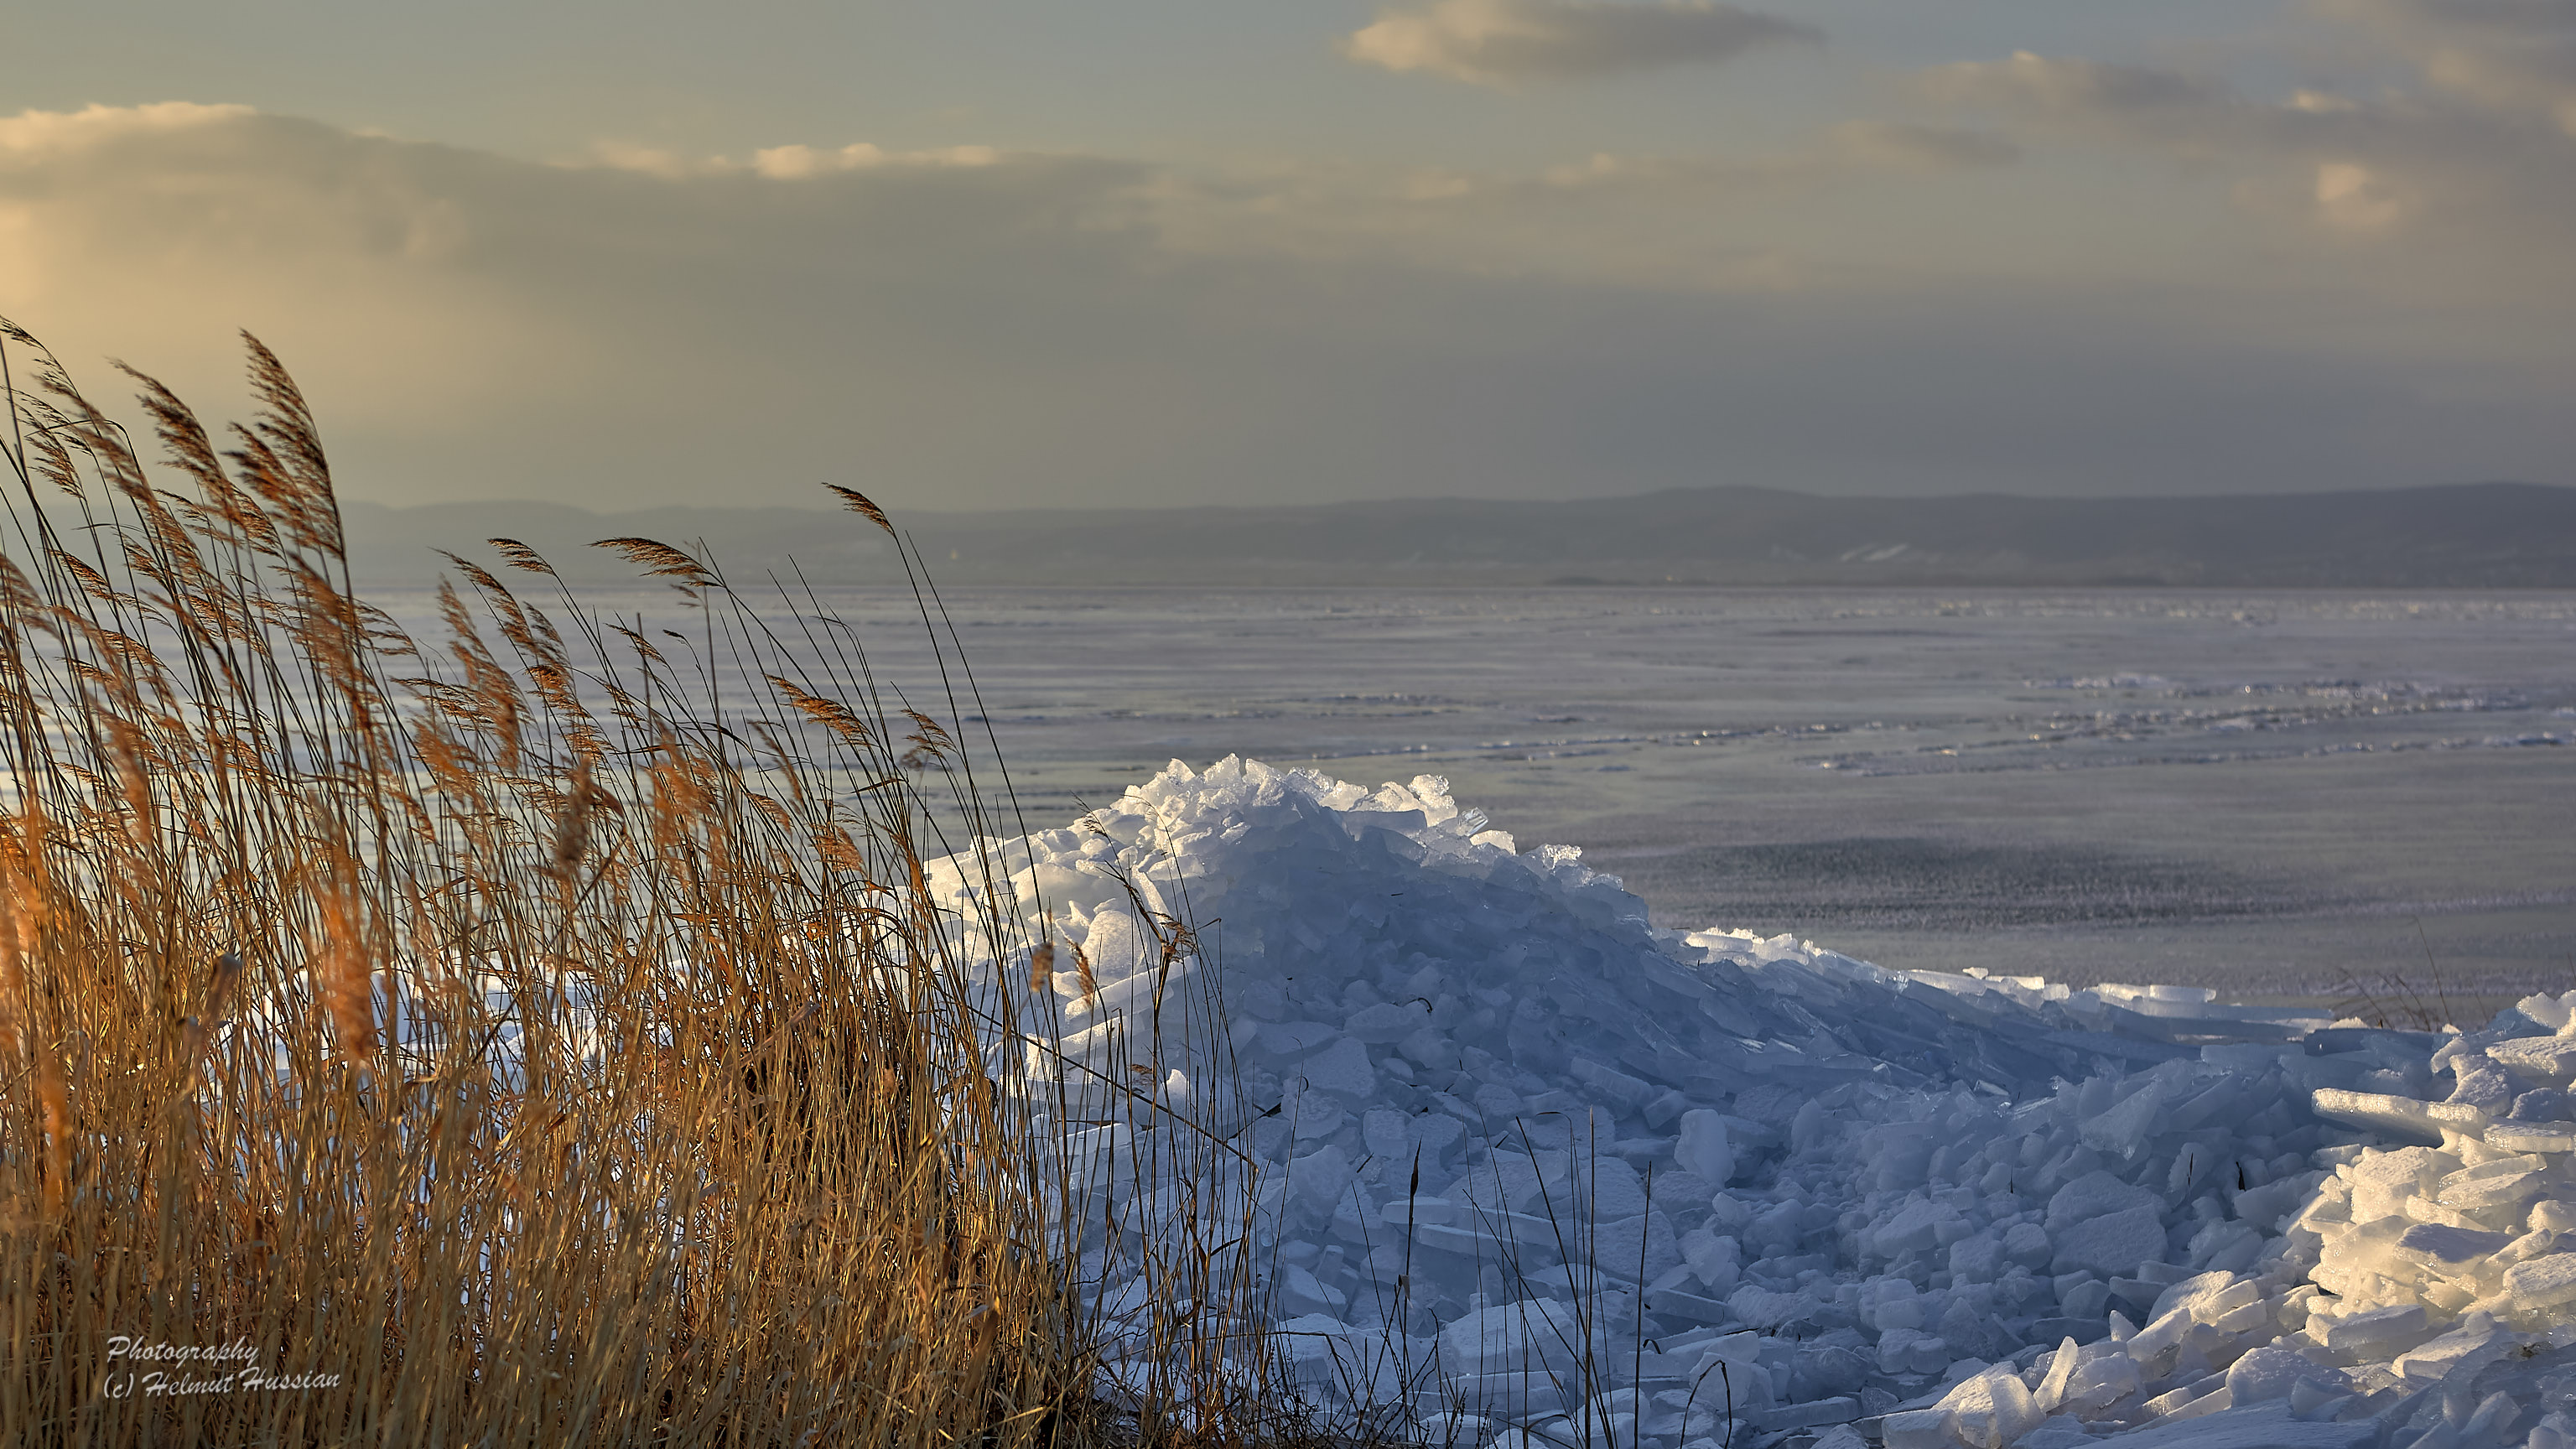 Winter evening at Lake Neusiedl in Austria